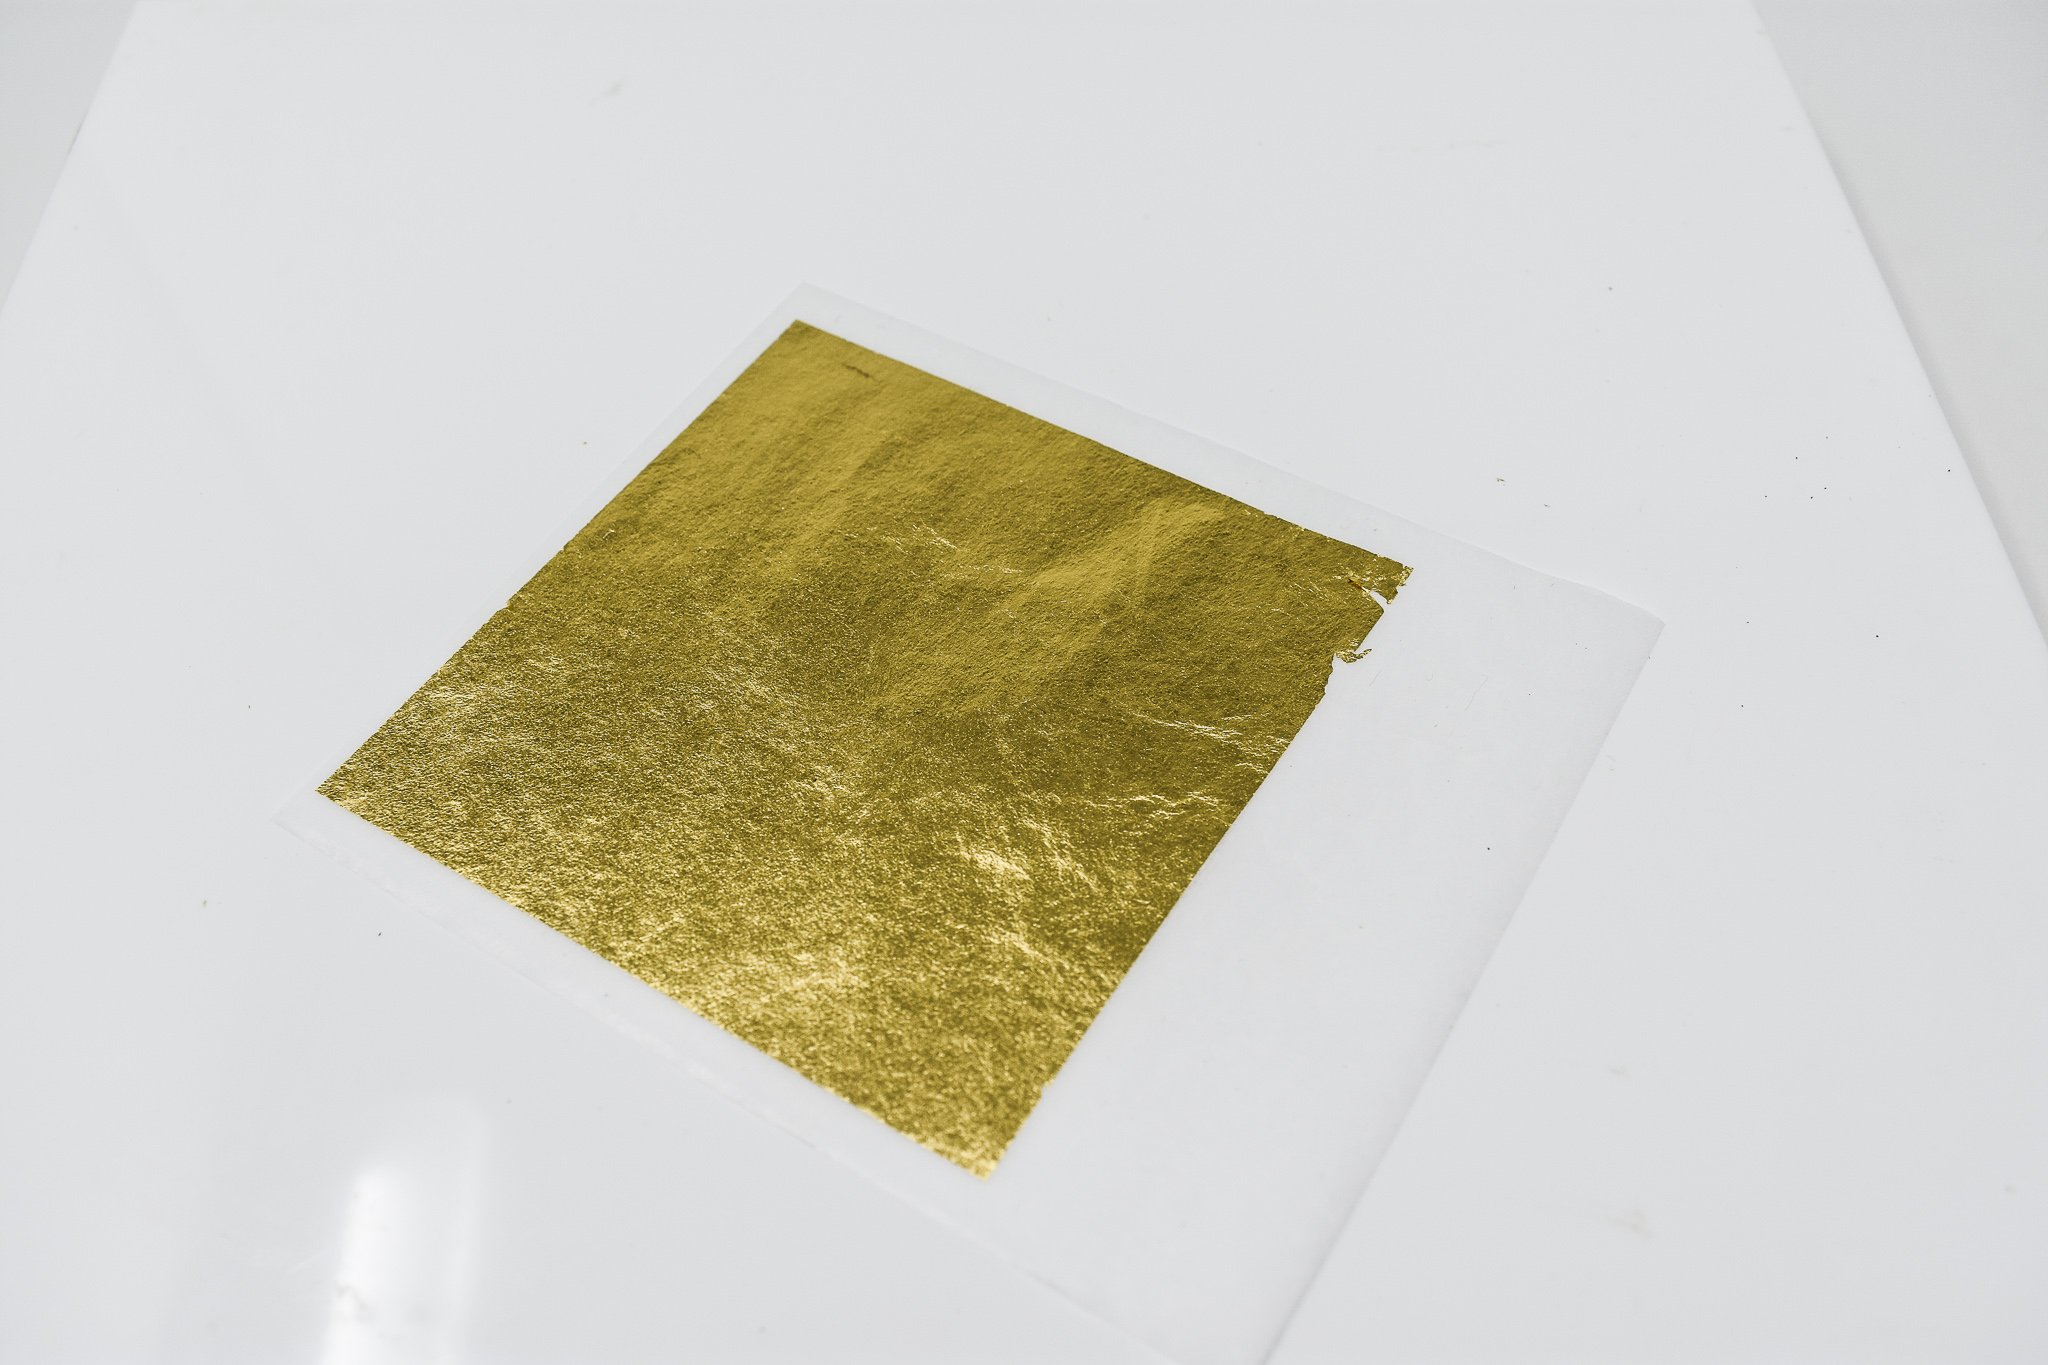 24 Karat Edible Gold Leaf Firm Transfer Sheets by Slofoodgroup (Hard Press Transfer Sheets) 25 Sheets per Book, 3.15 in. by 3. 15 in. Hard Press Transfer Sheets by SLO FOOD GROUP (Image #6)